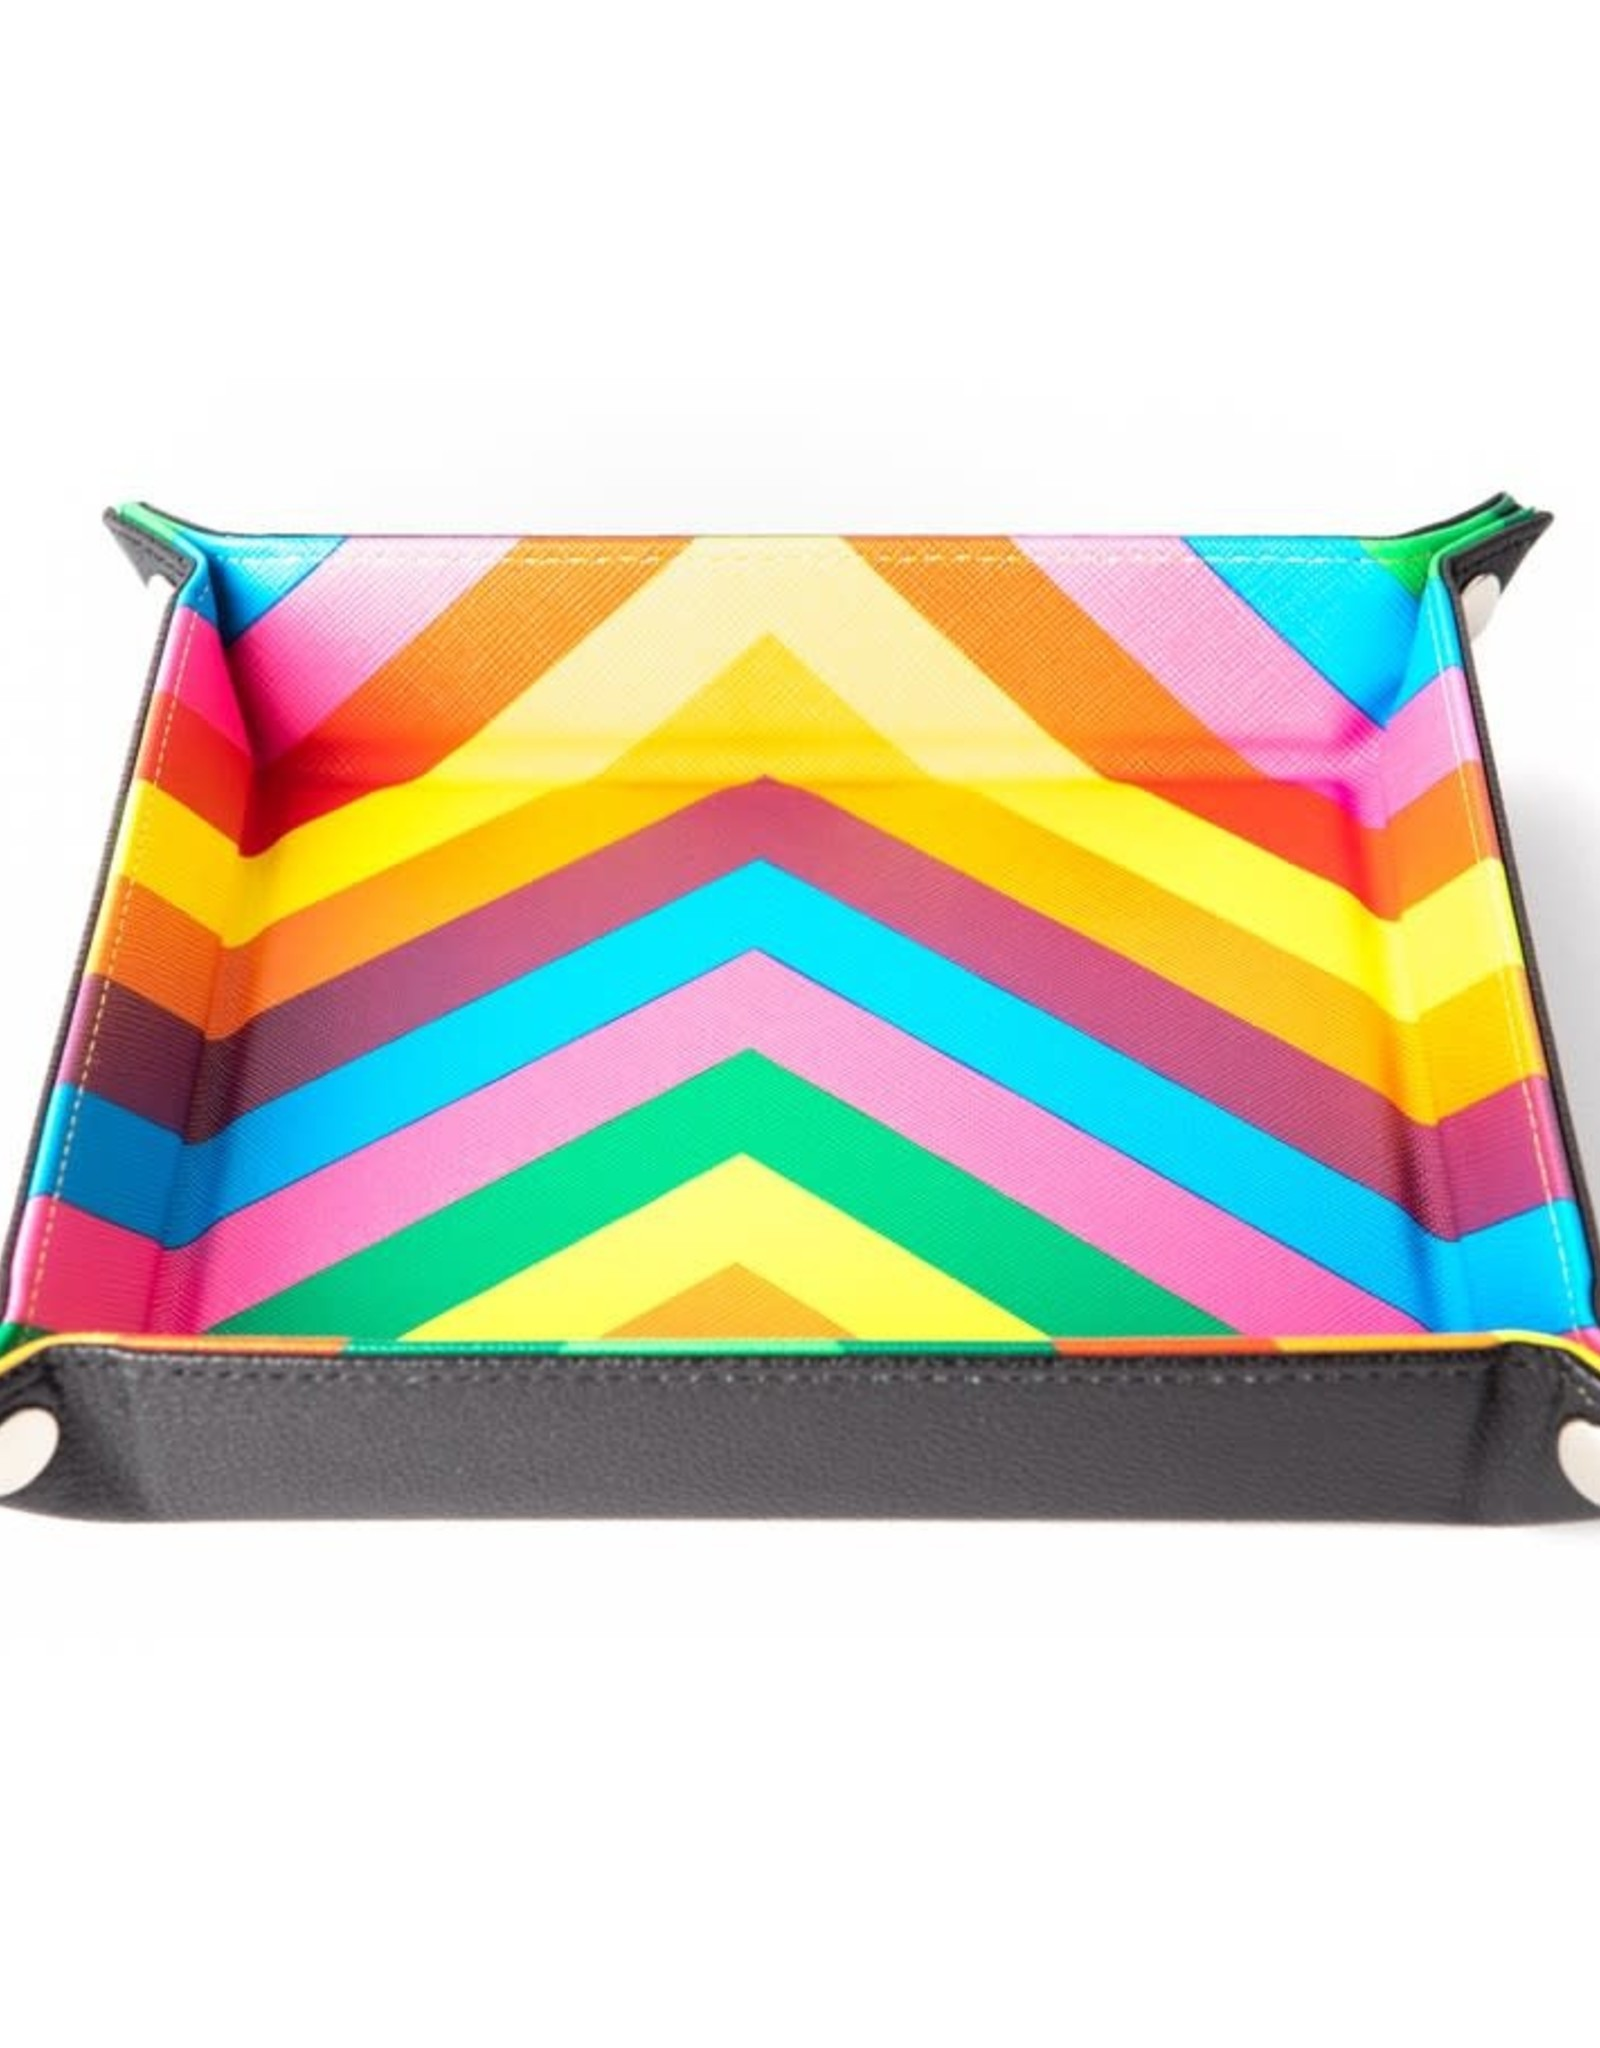 Velvet Fold Dice Tray with Rainbow Leather